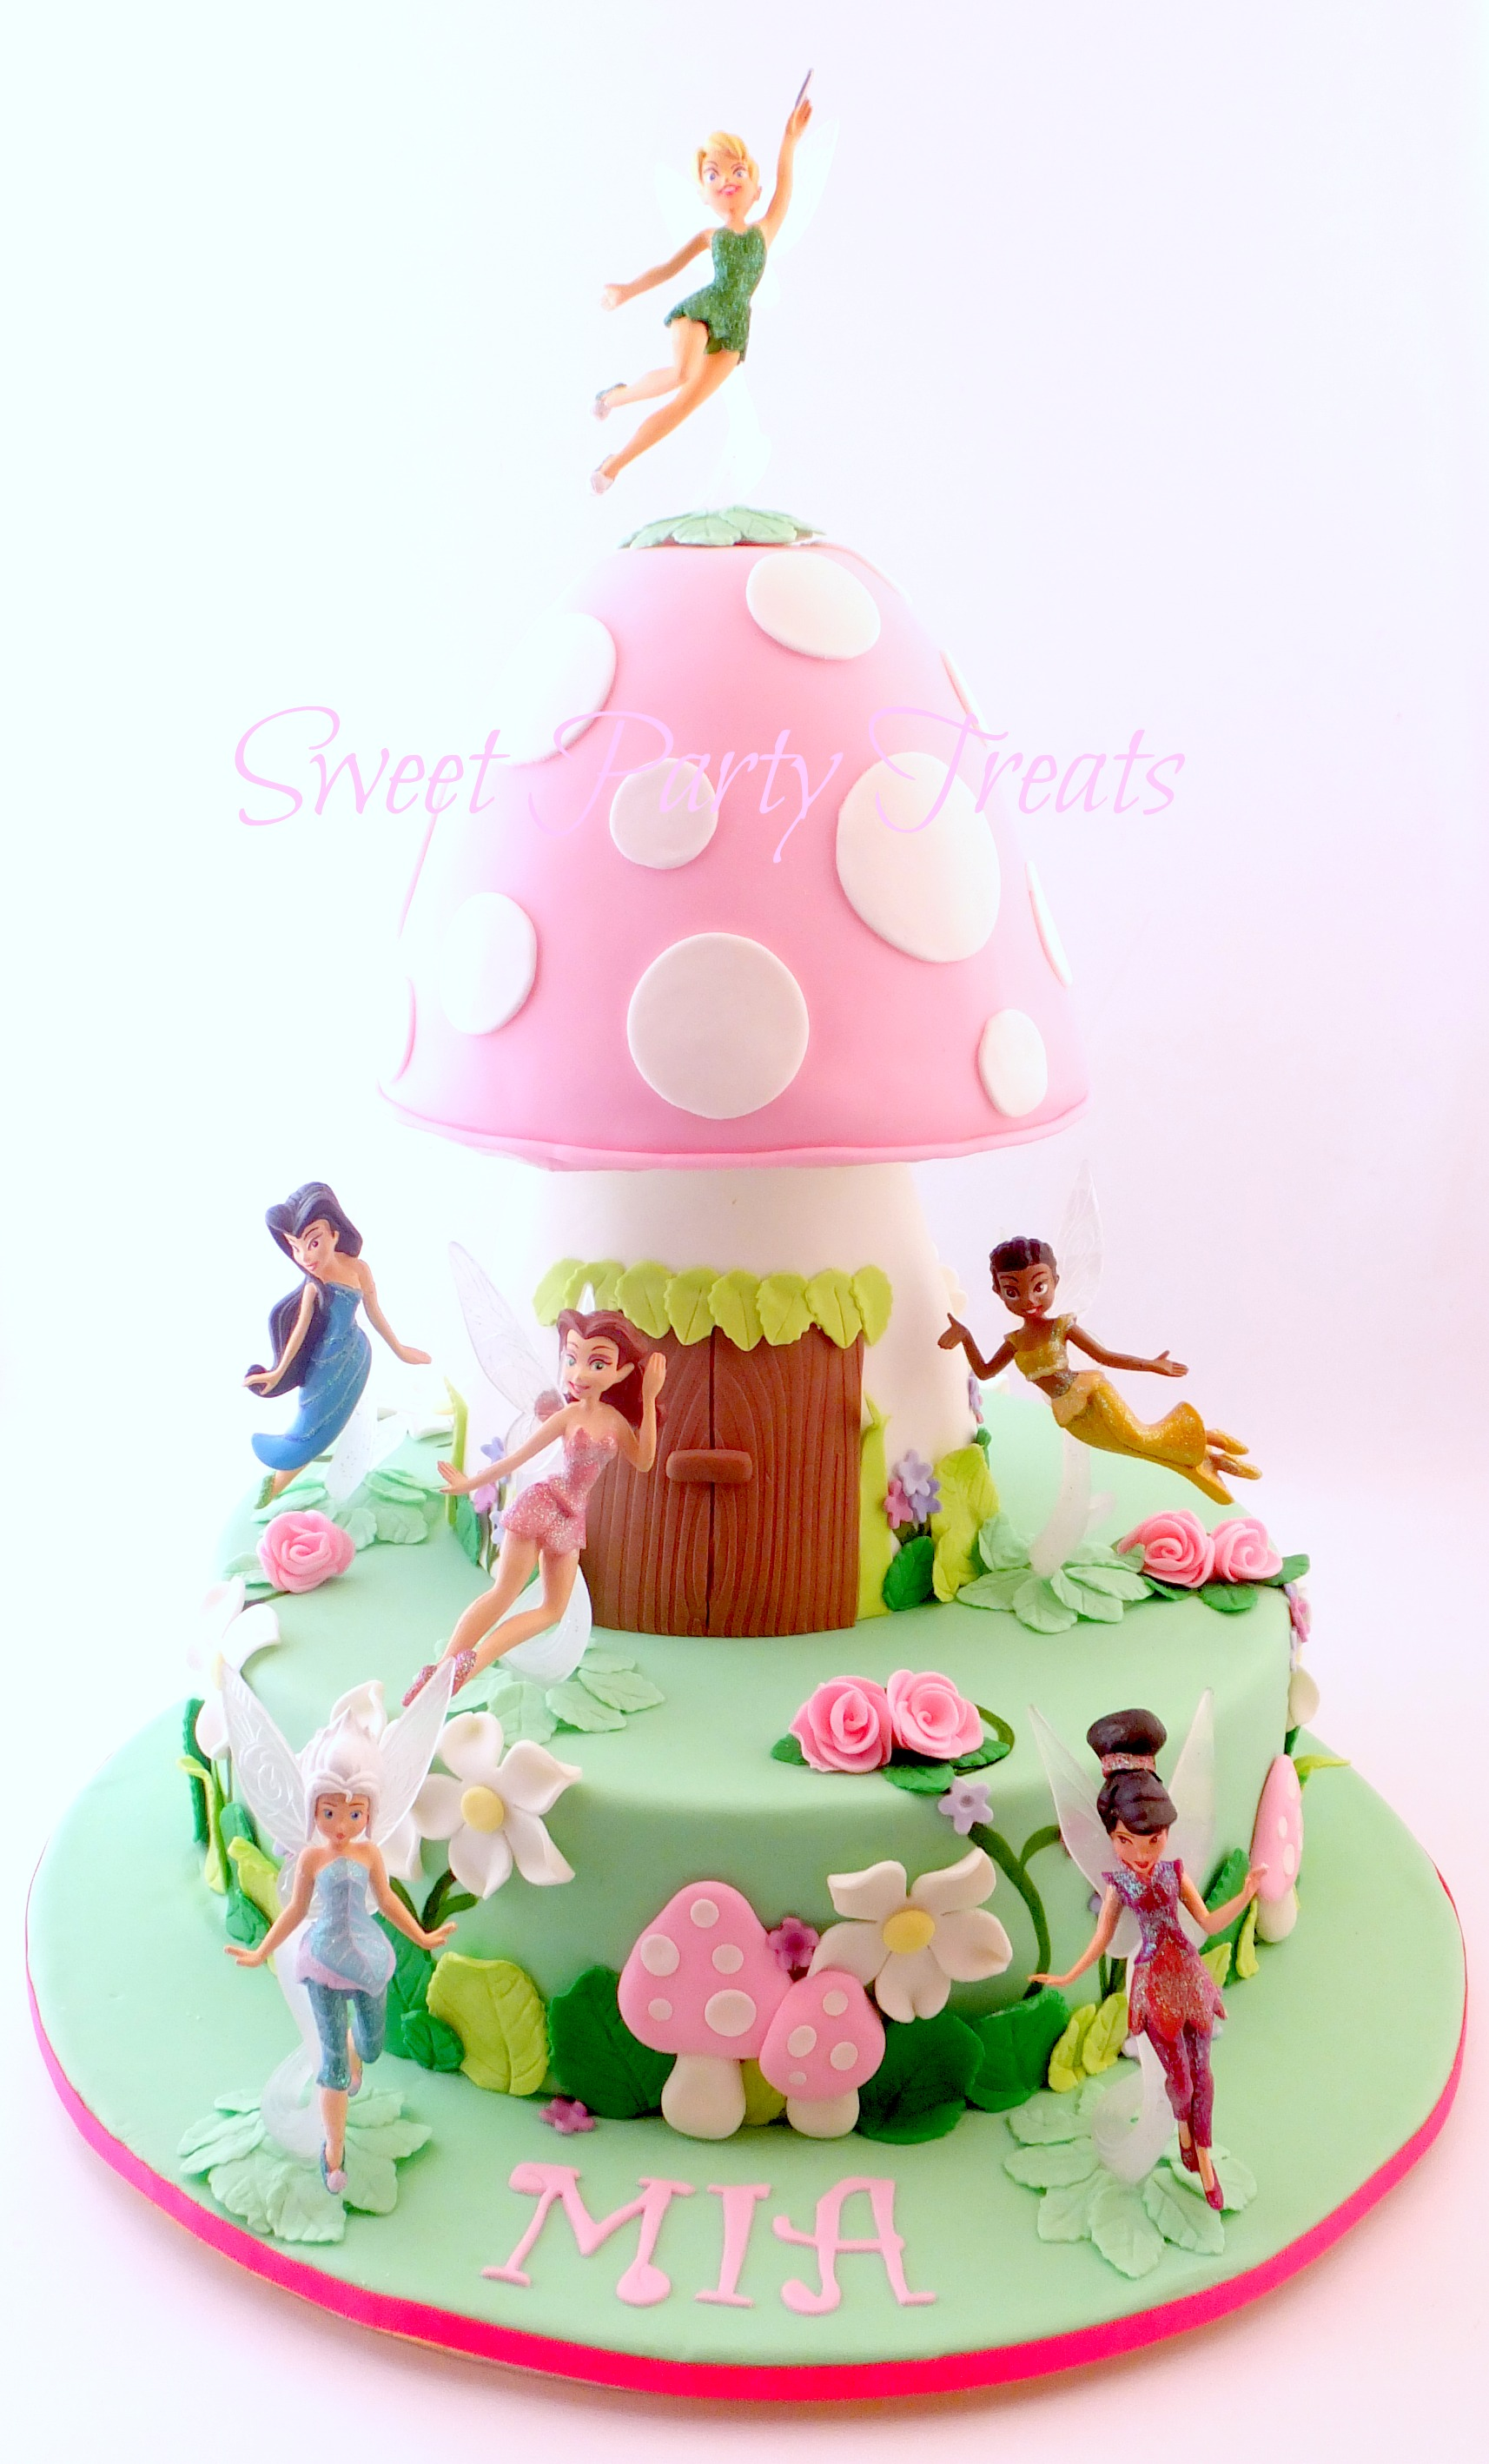 Fairy Princess Cake Images : Fairy Princess Cake   Sweet Party Treats